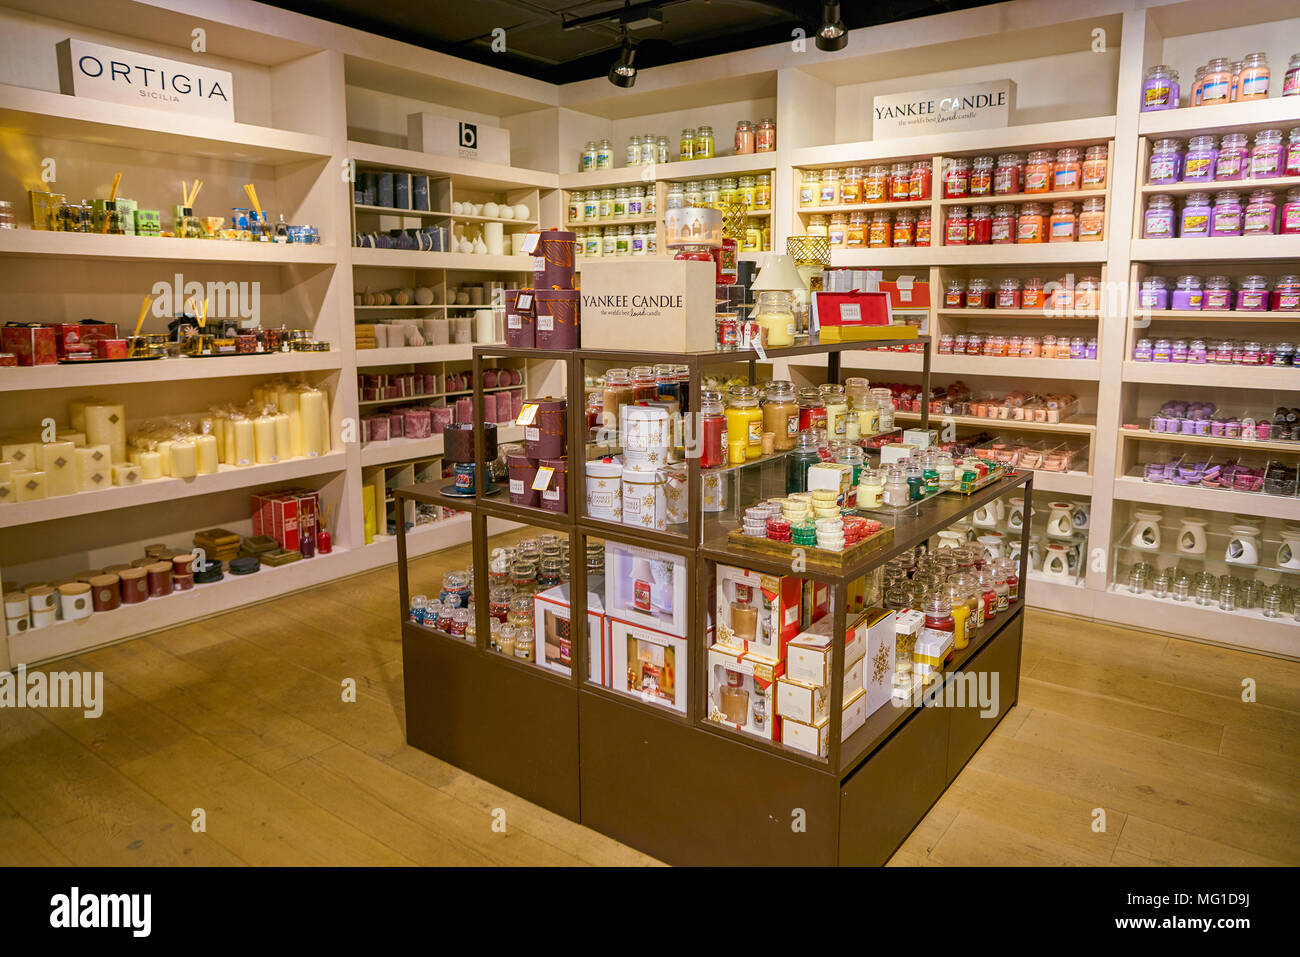 Yankee Candle Negozi.Yankee Candle Store Stock Photos Yankee Candle Store Stock